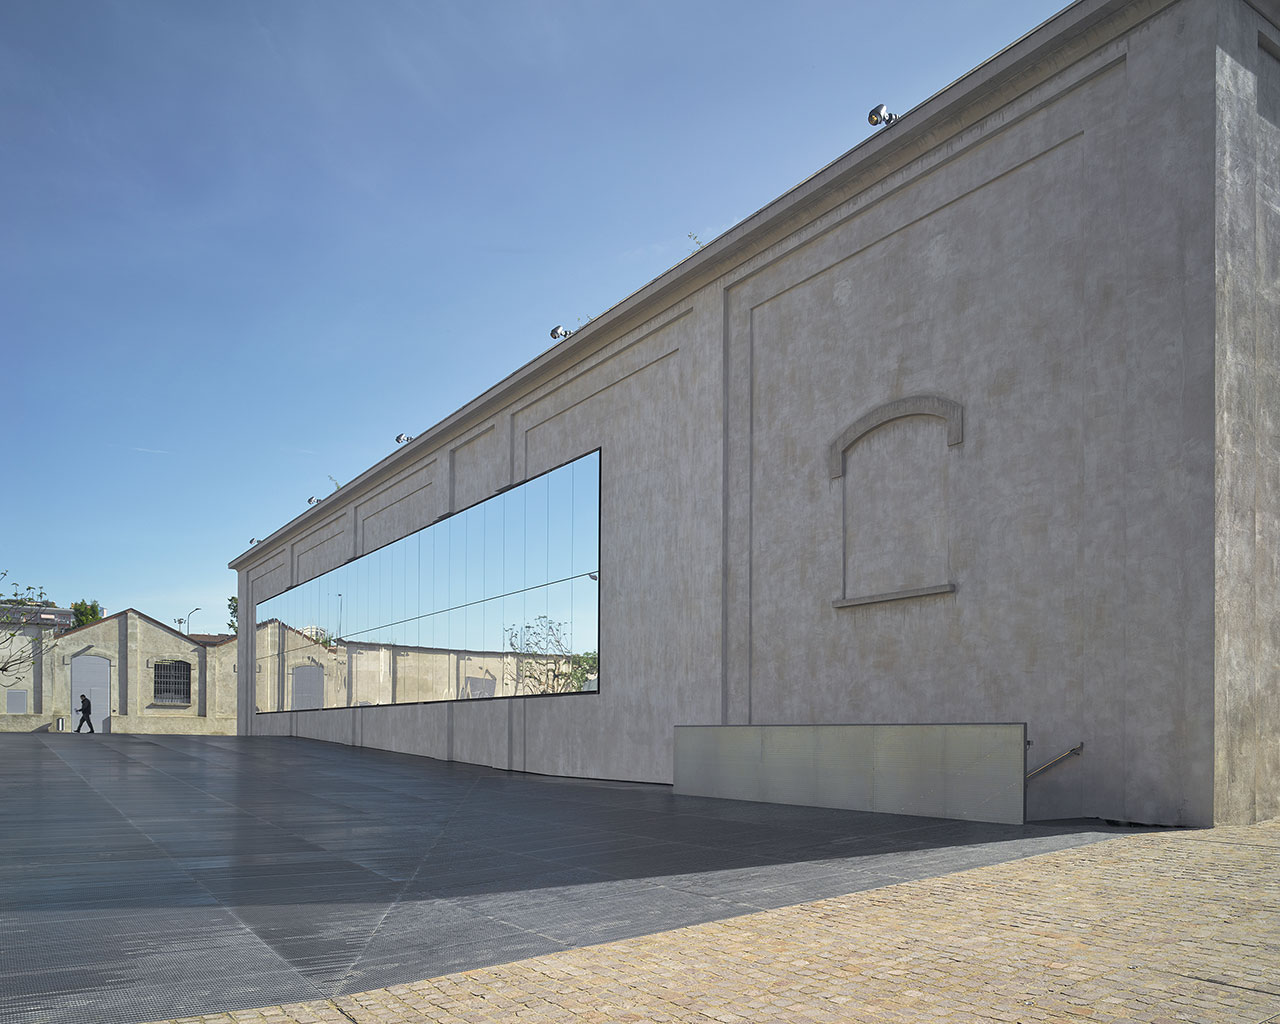 New Milan venue of Fondazione PradaArchitectural project by OMAPhoto: Bas Princen2015Courtesy Fondazione Prada.